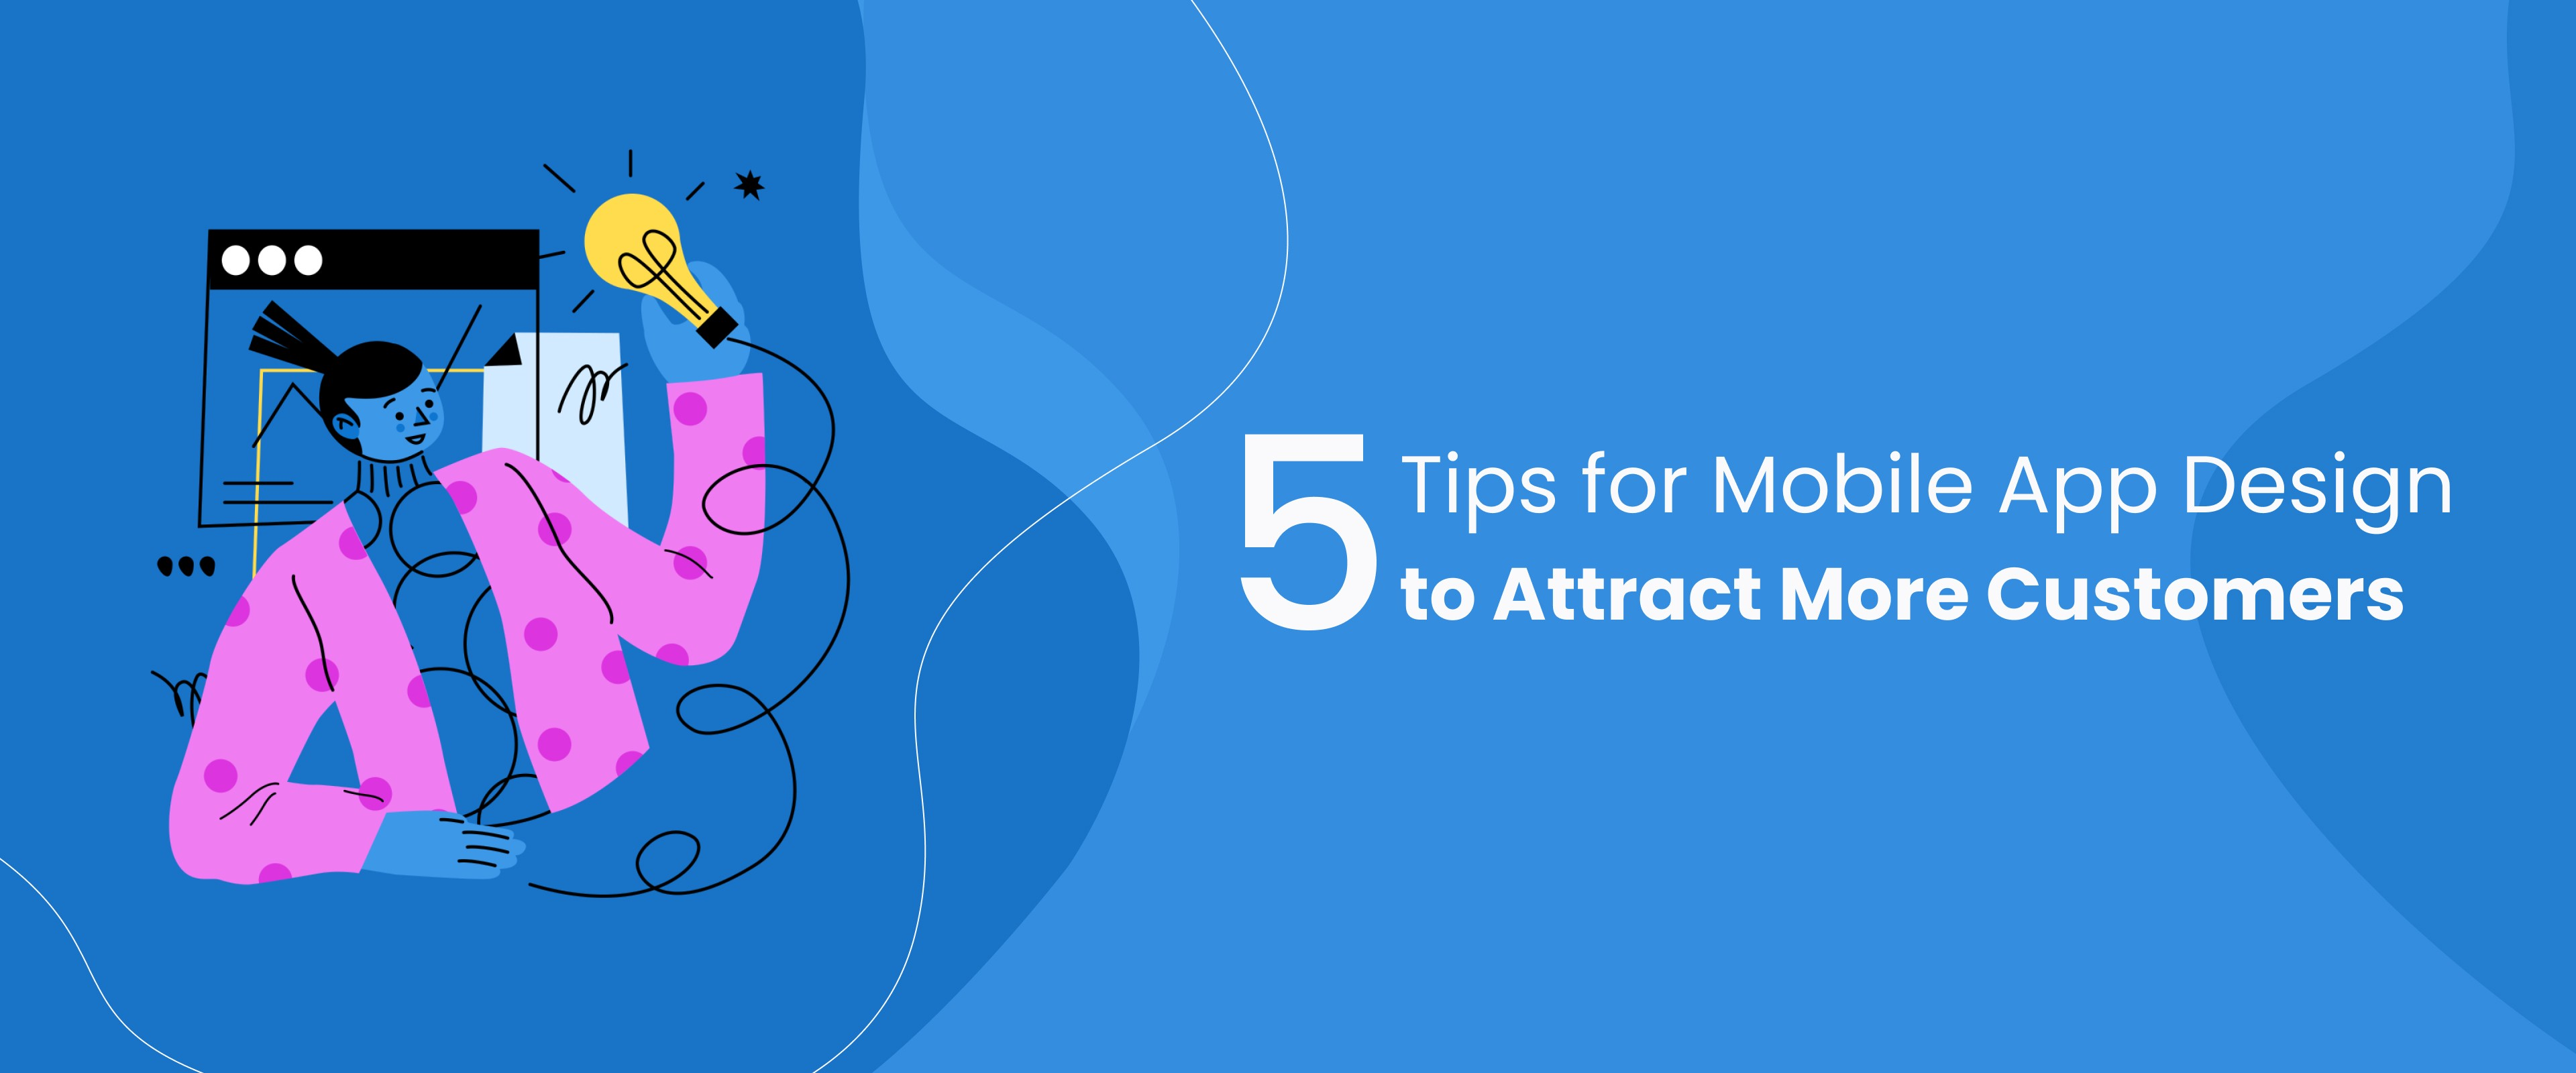 5 tips for mobile app design to attract more customers